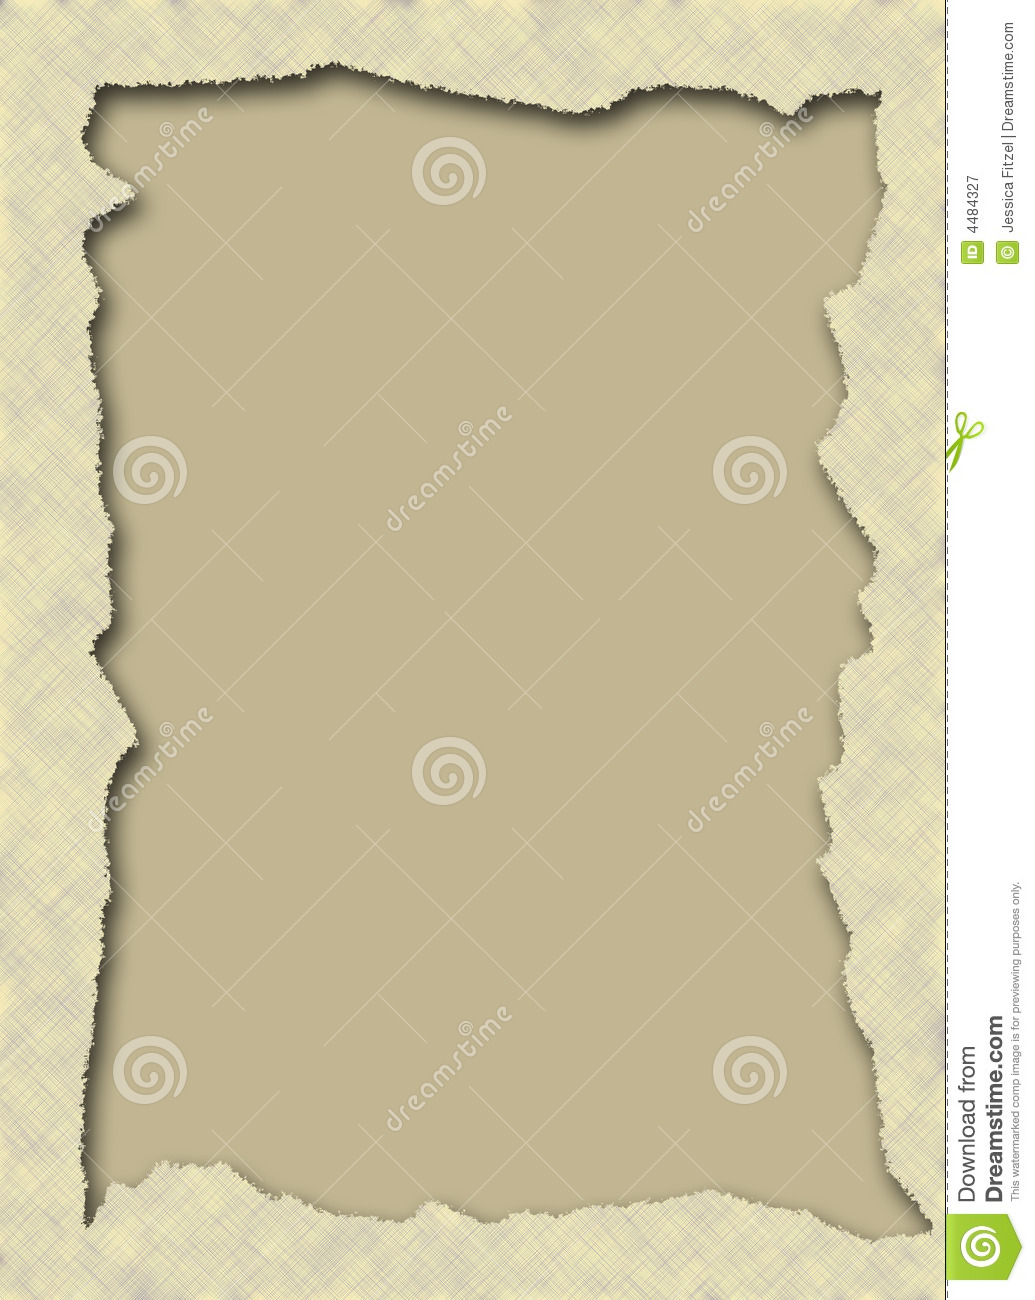 torn paper frame royalty free stock photography